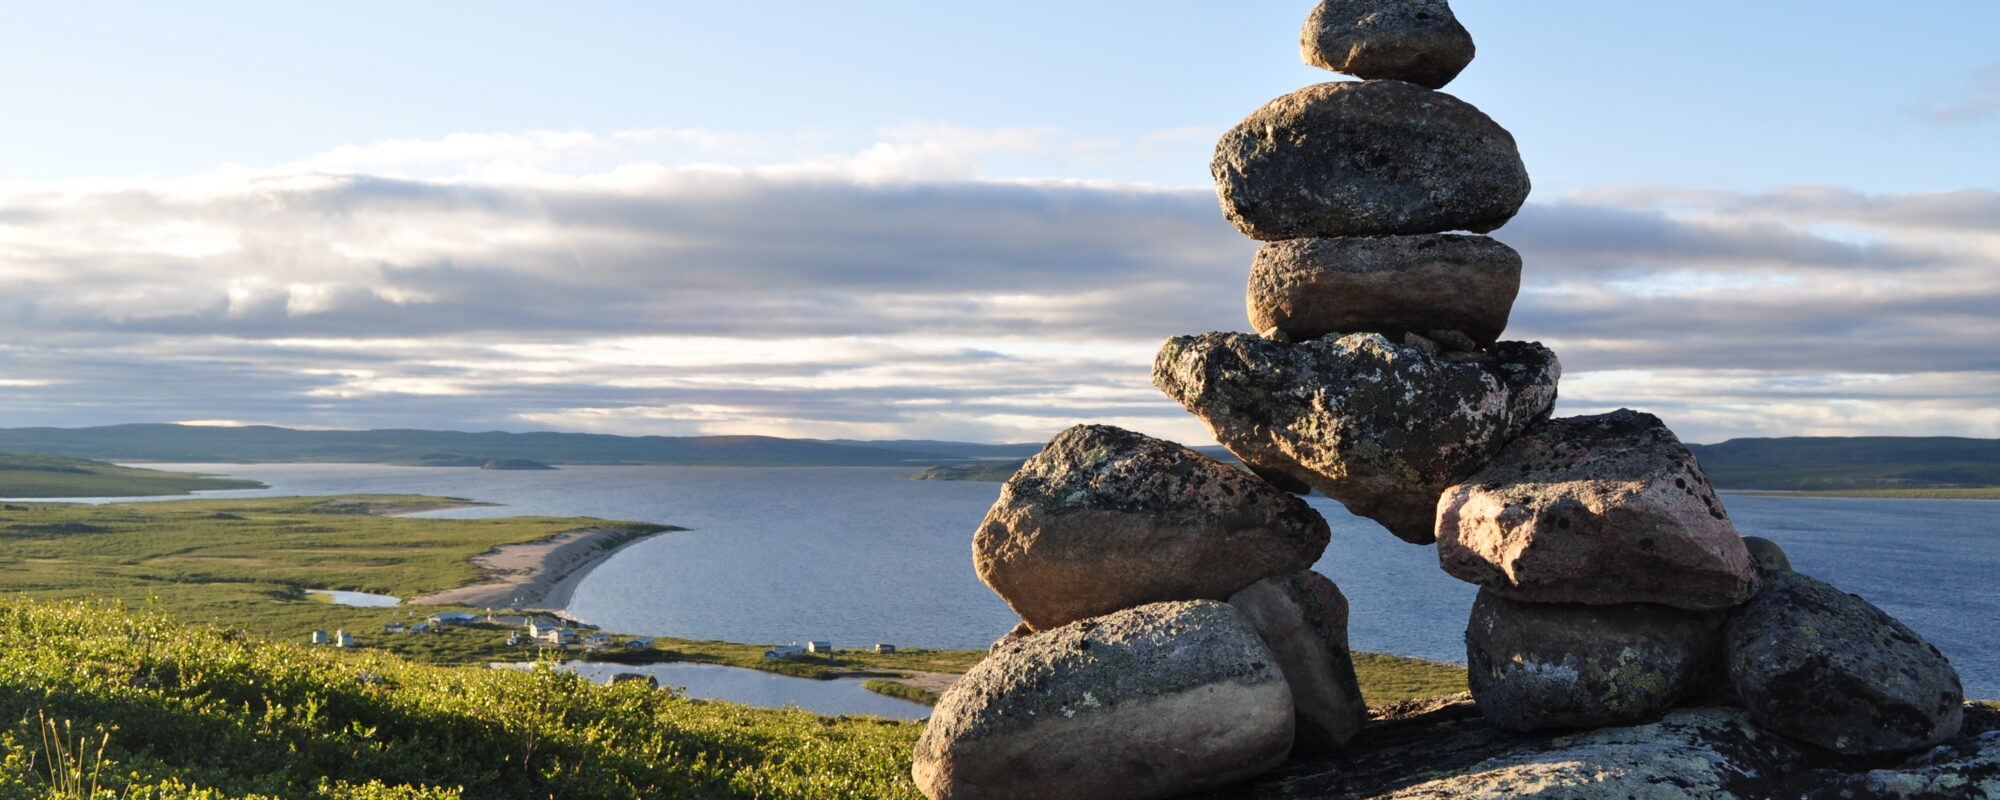 View from ridge overlooking Point Lake with view of lodge and inukshuk in foreground